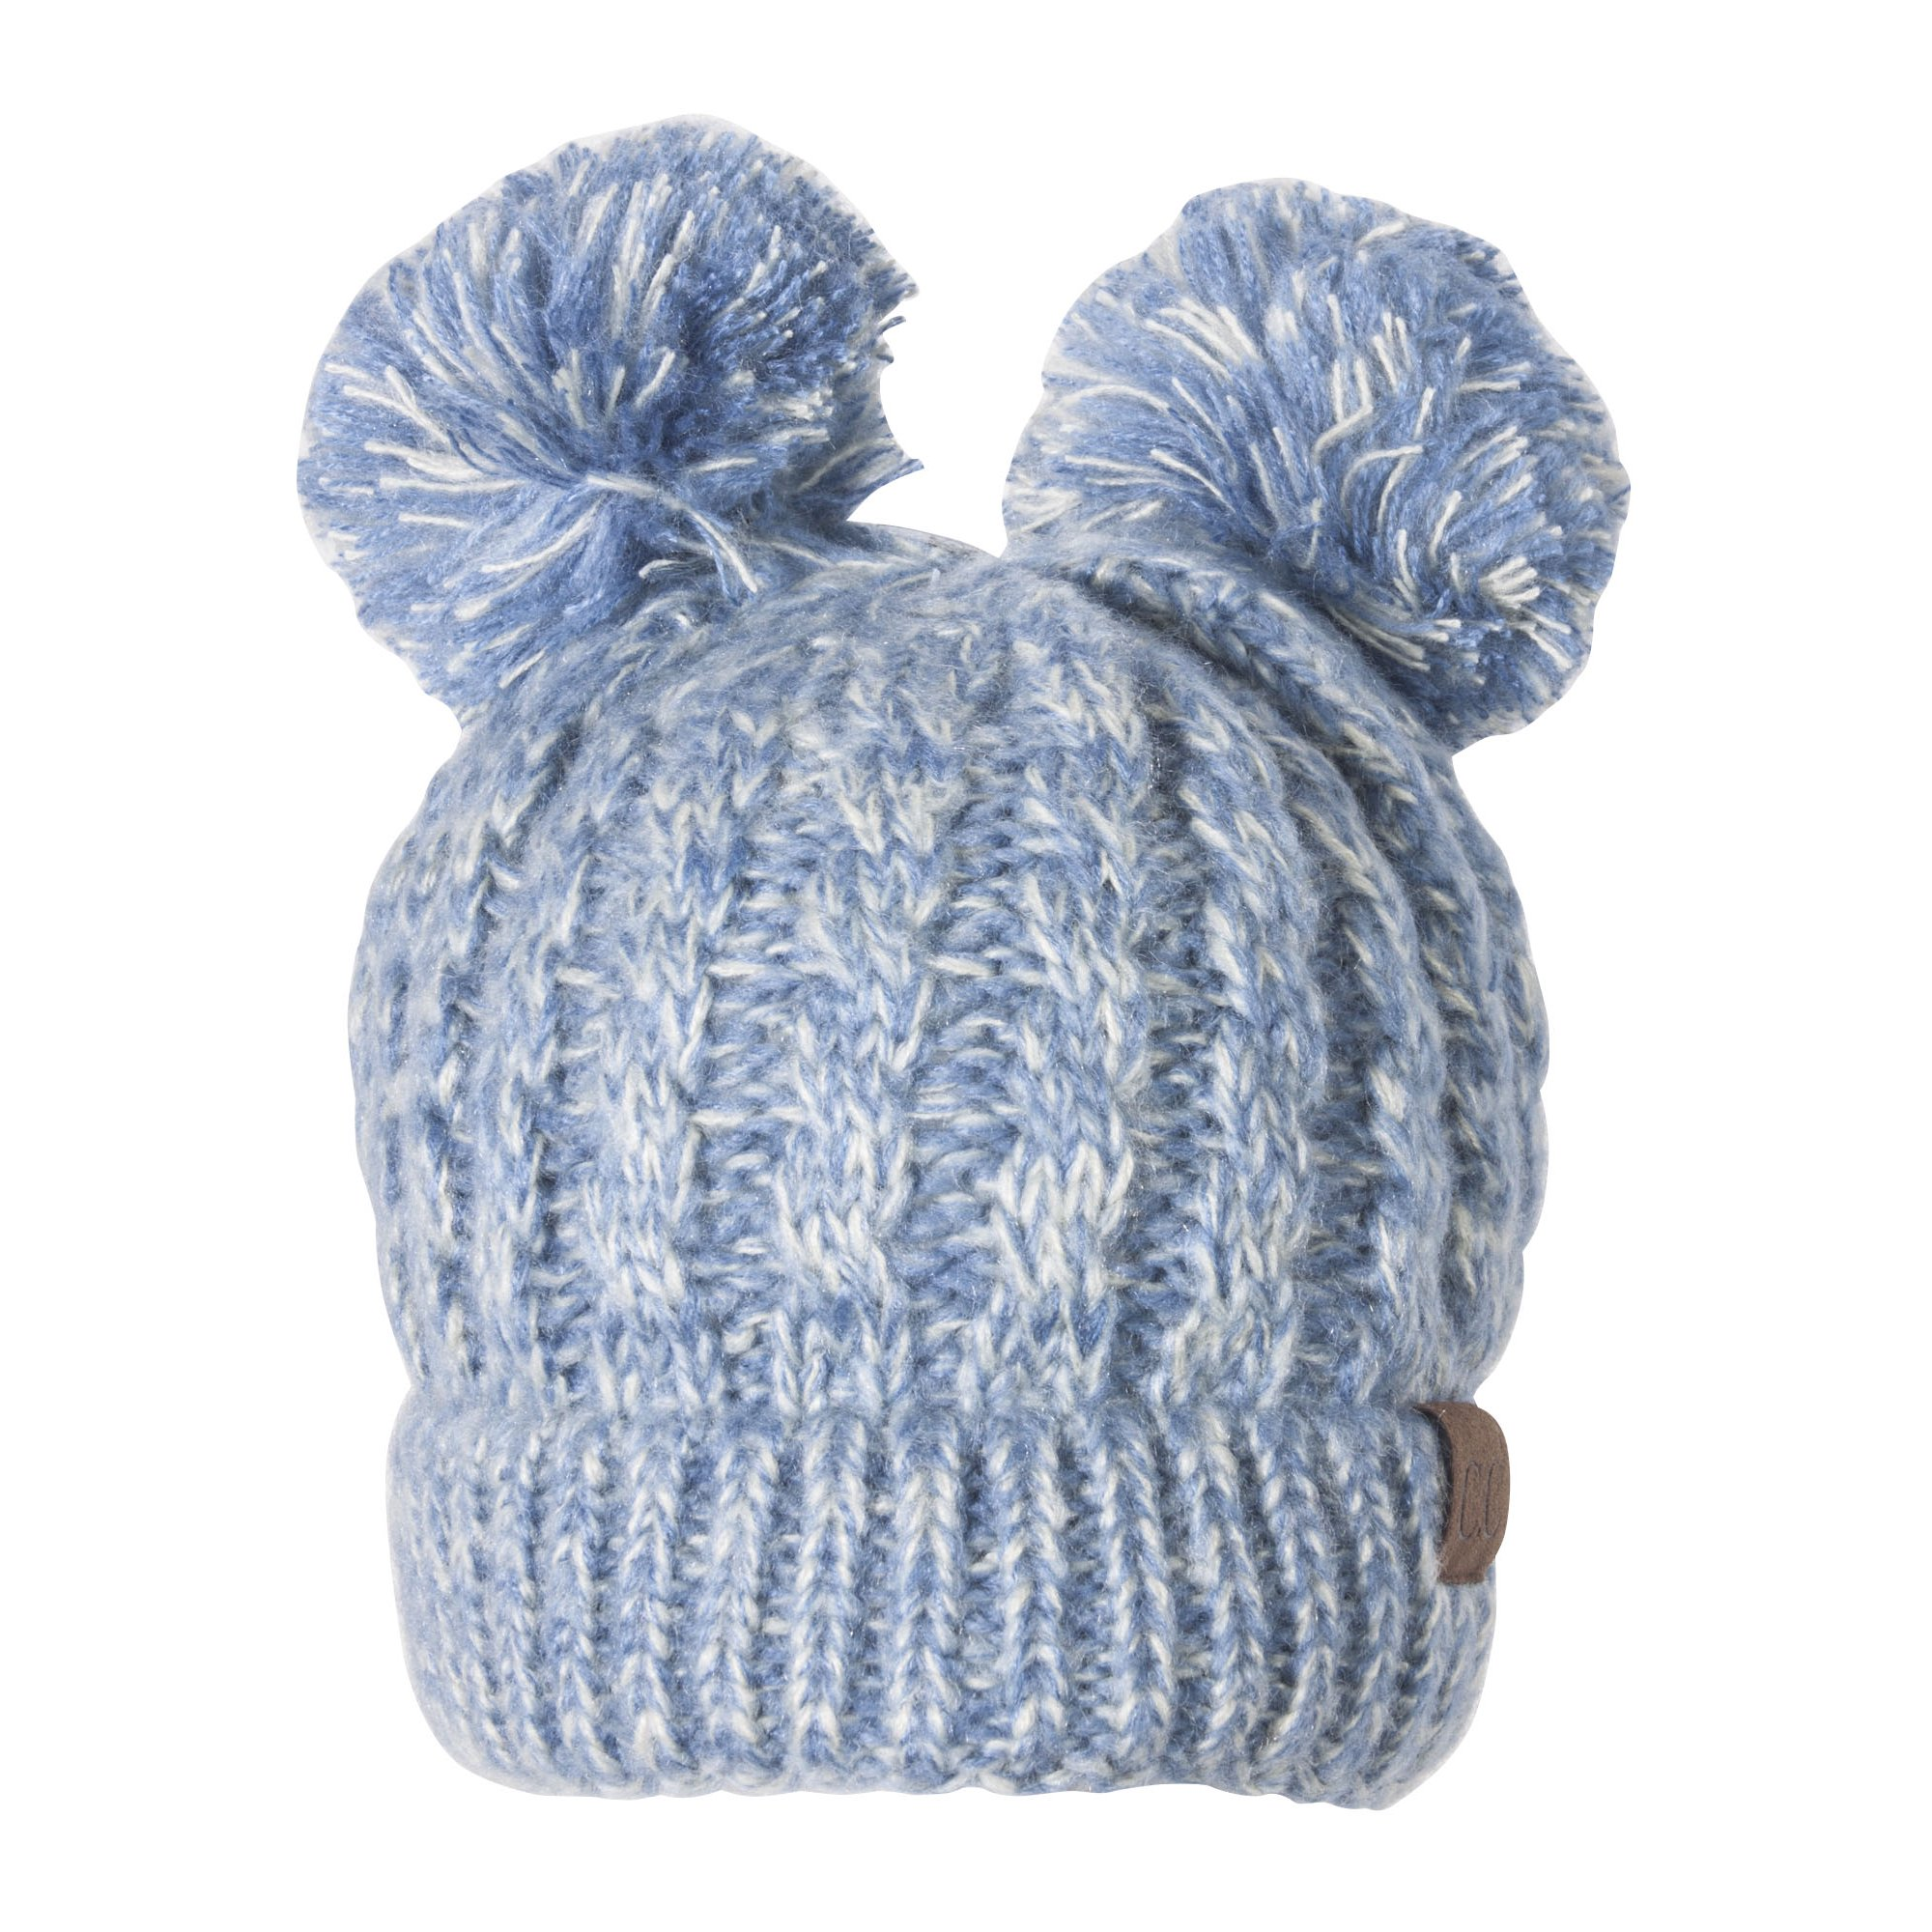 ac32839d0 Double Pom Pom Cable Knit Soft Stretch Beanie - Denim | Walmart Canada